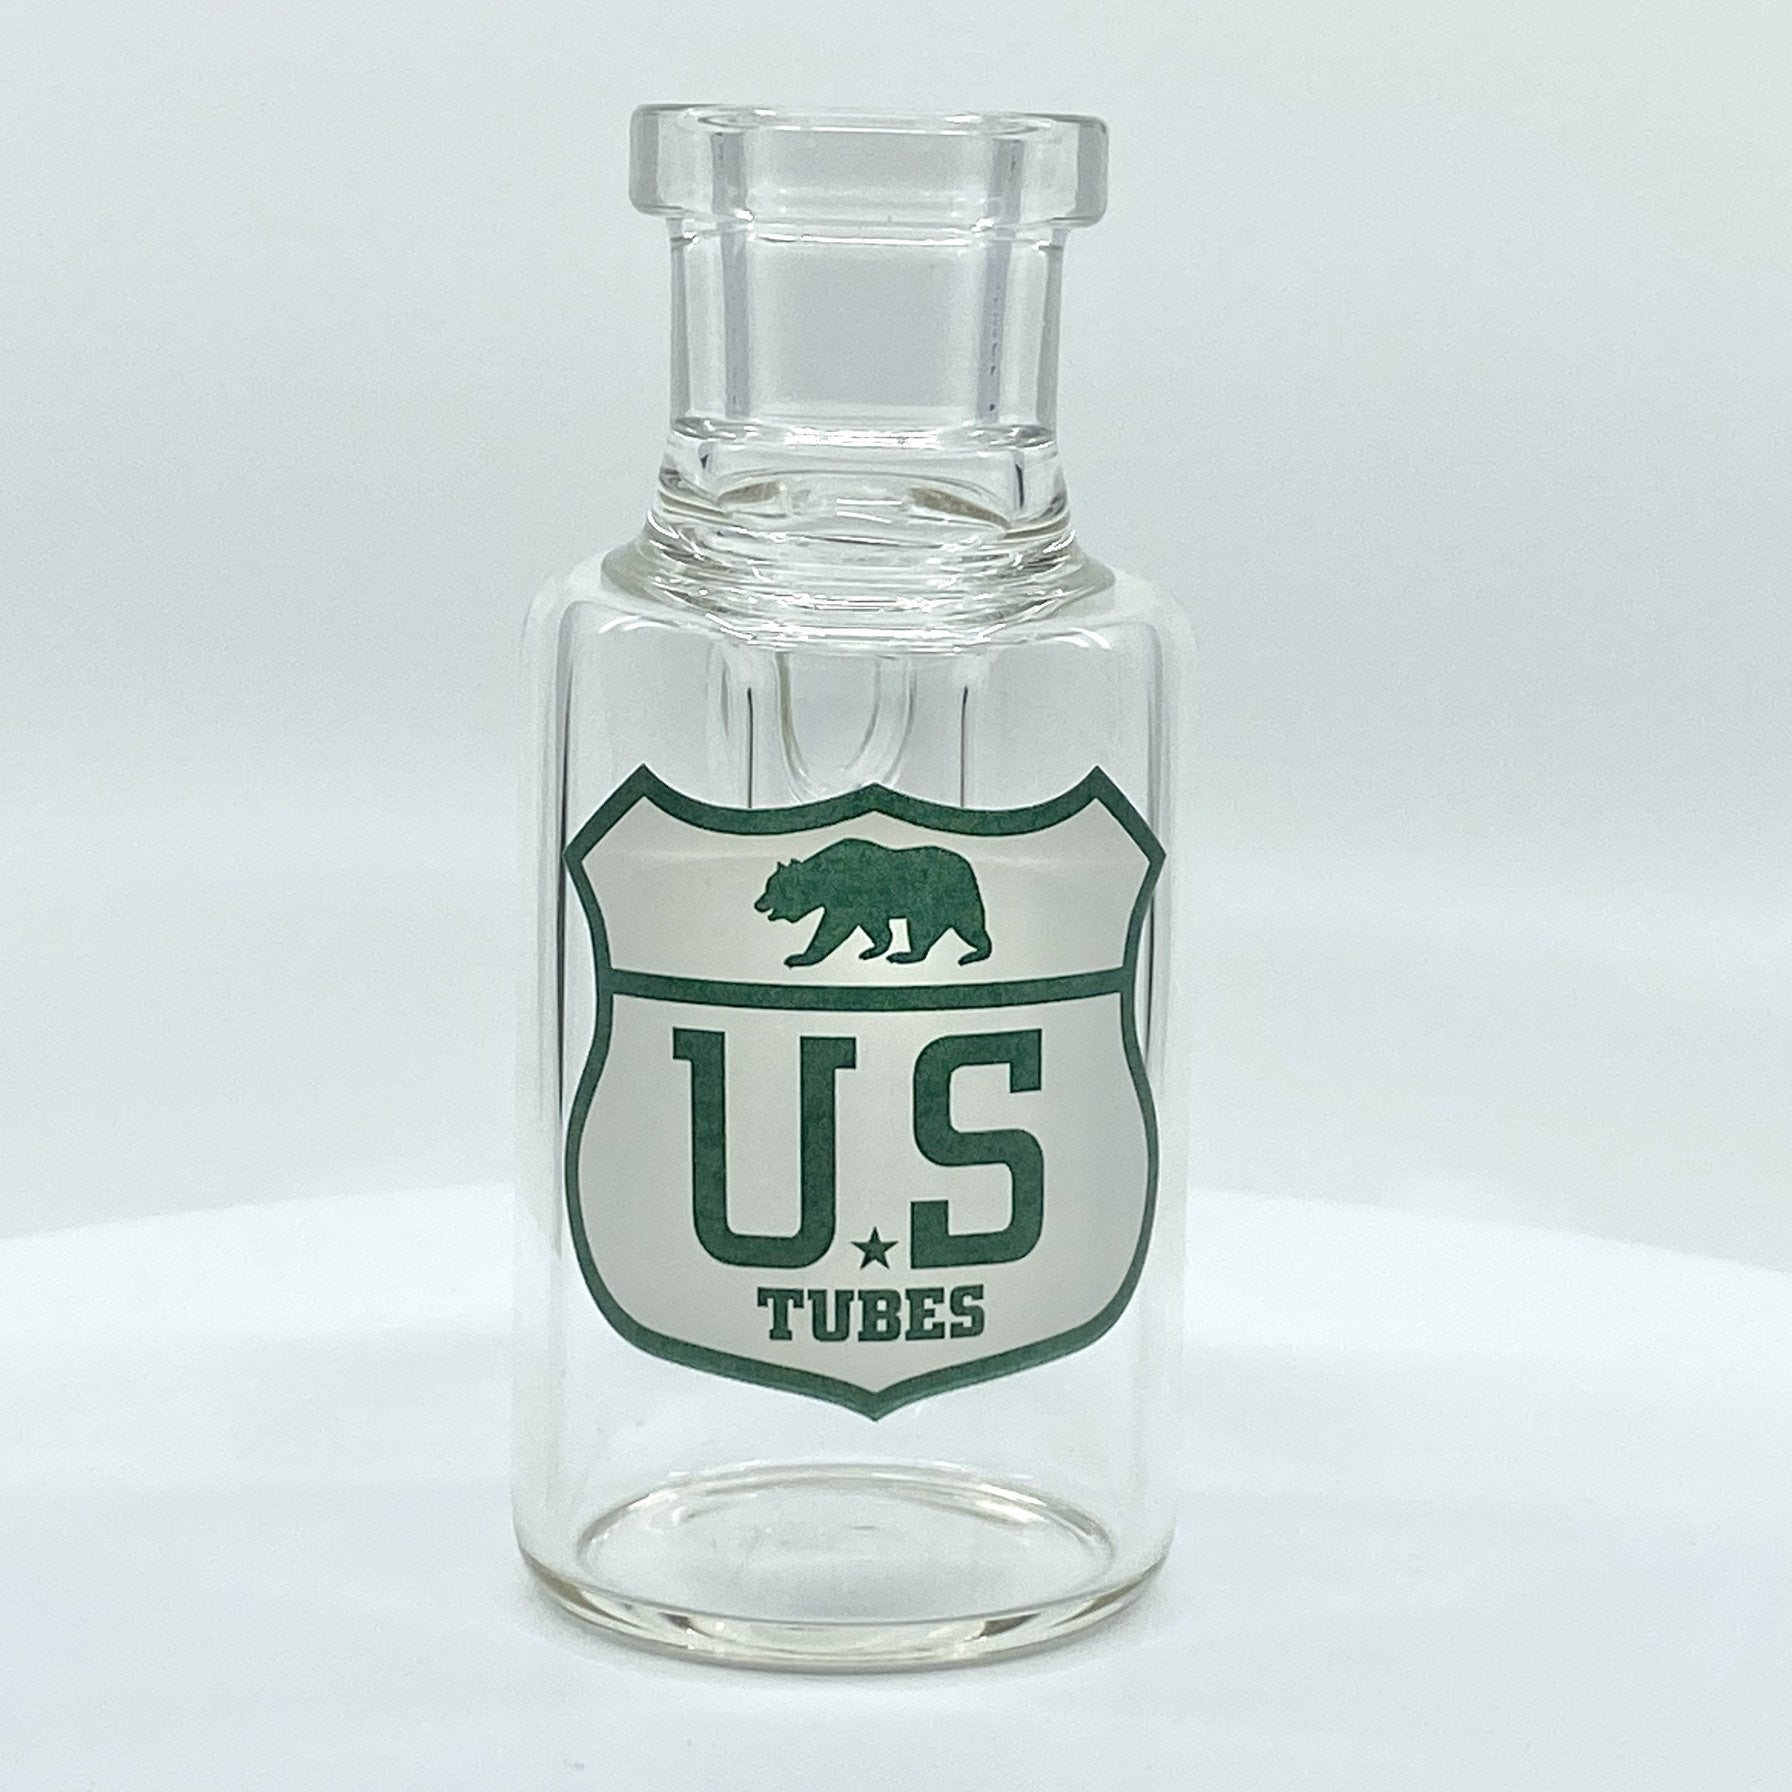 US TUBES 19mm 45 Degree Dry Catcher (White/Aqua HWY Decal) s